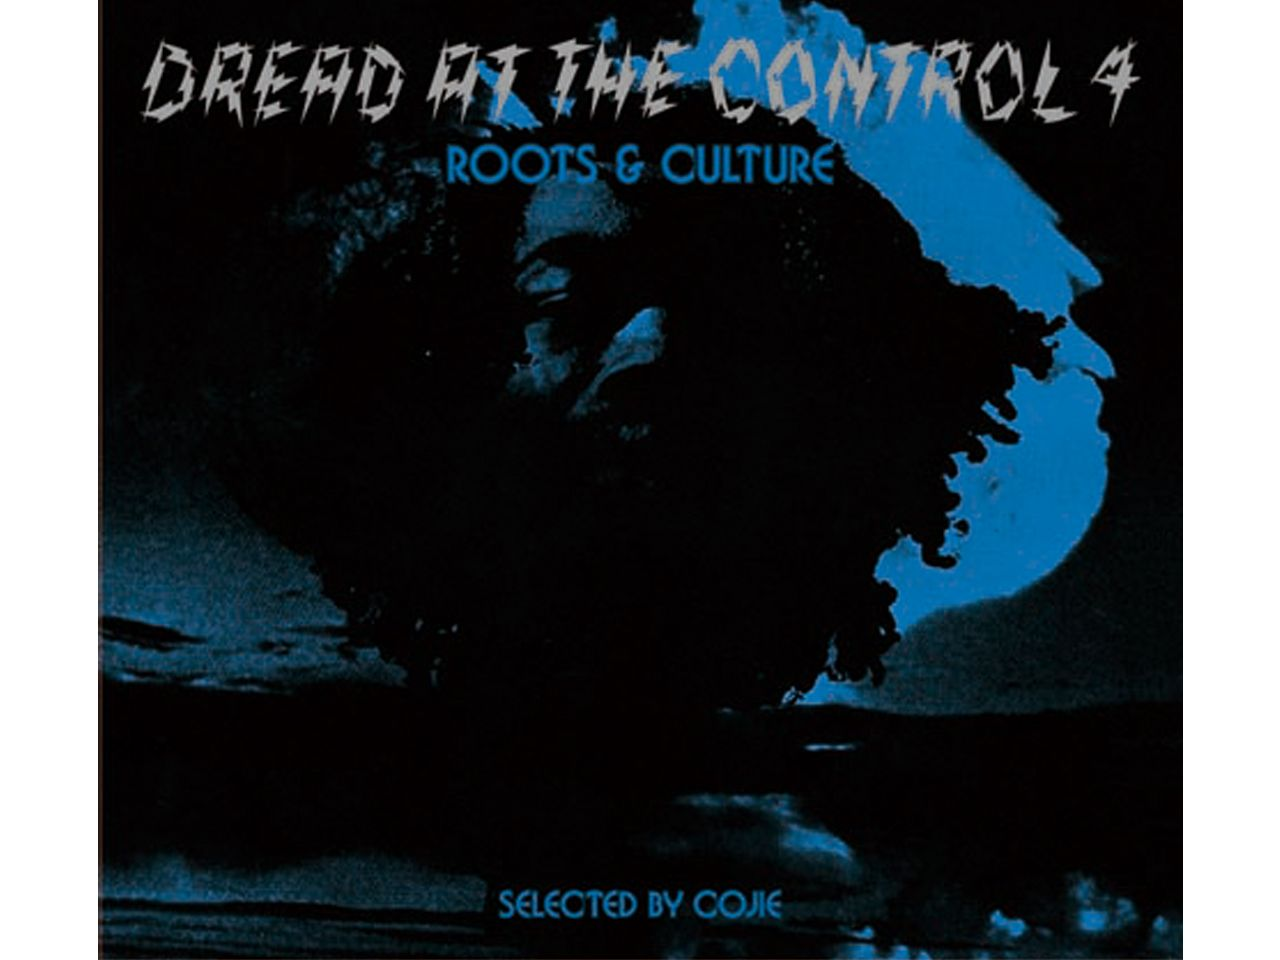 DREAD AT THE CONTROL Vol.4 -COJIE from MIGHTY CROWN-